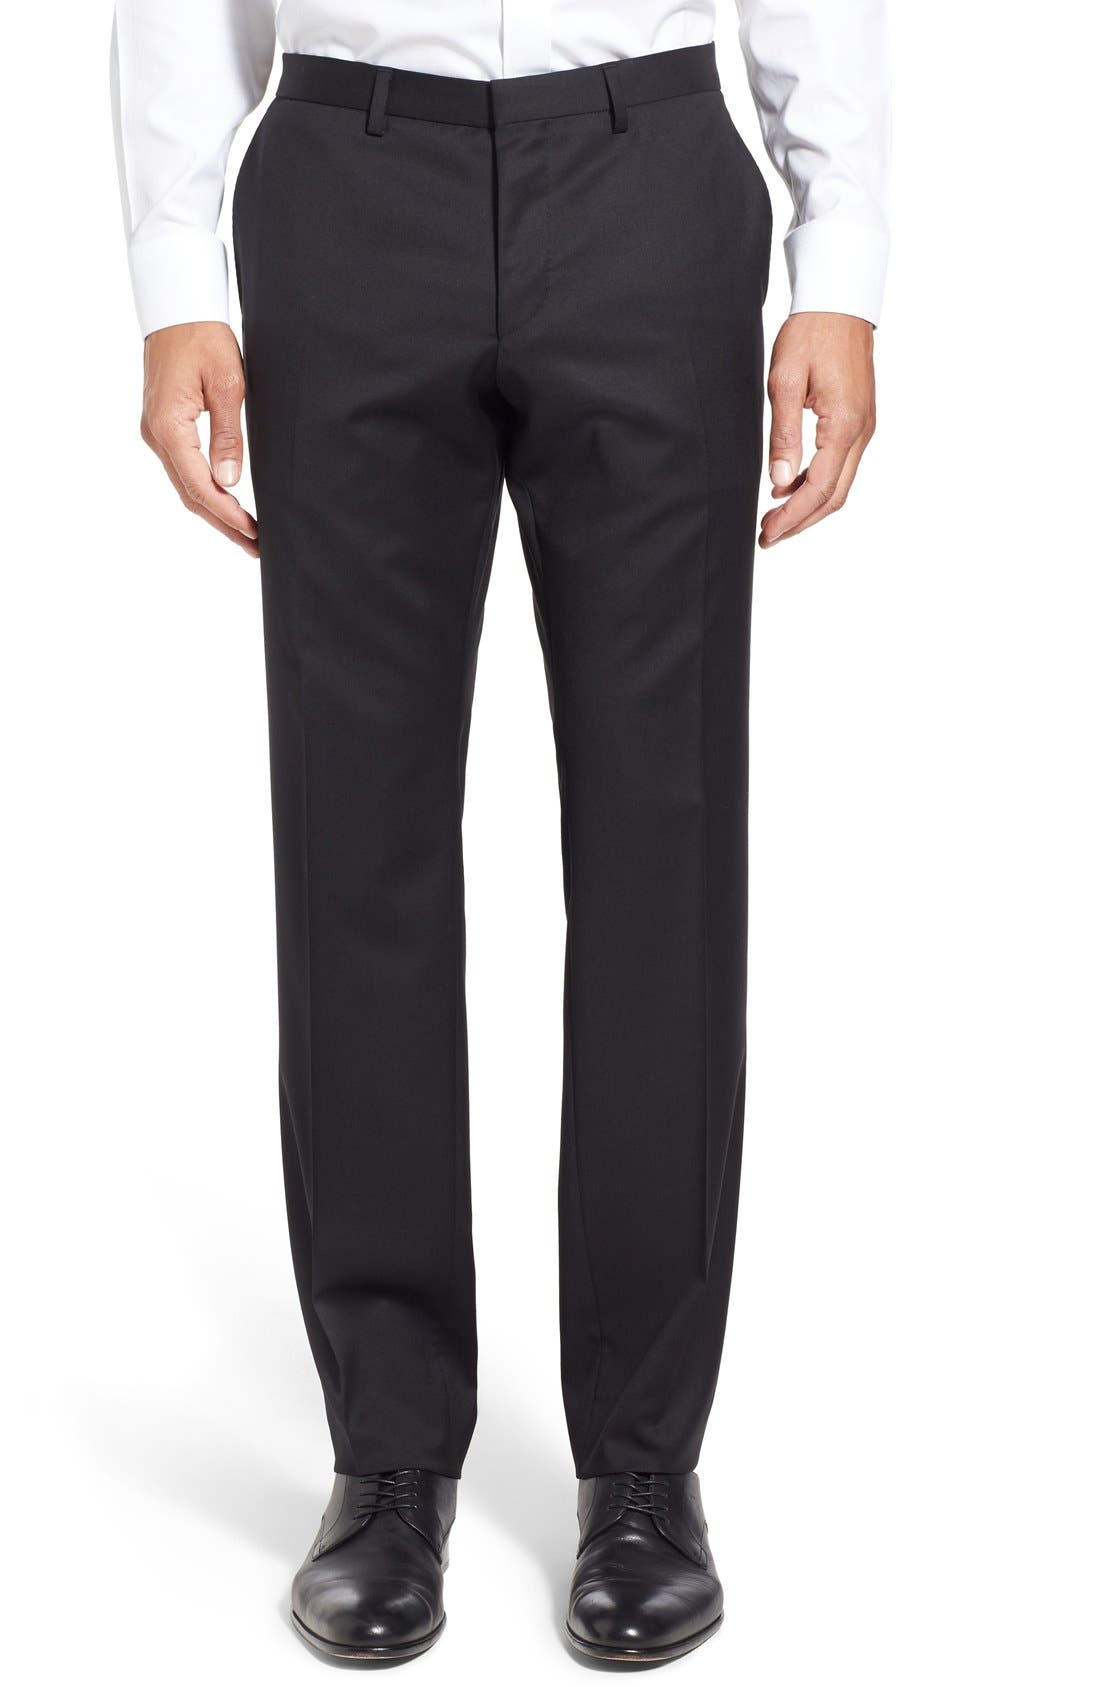 Ryan/Win Extra Trim Fit Solid Wool Suit,                             Alternate thumbnail 14, color,                             BLACK